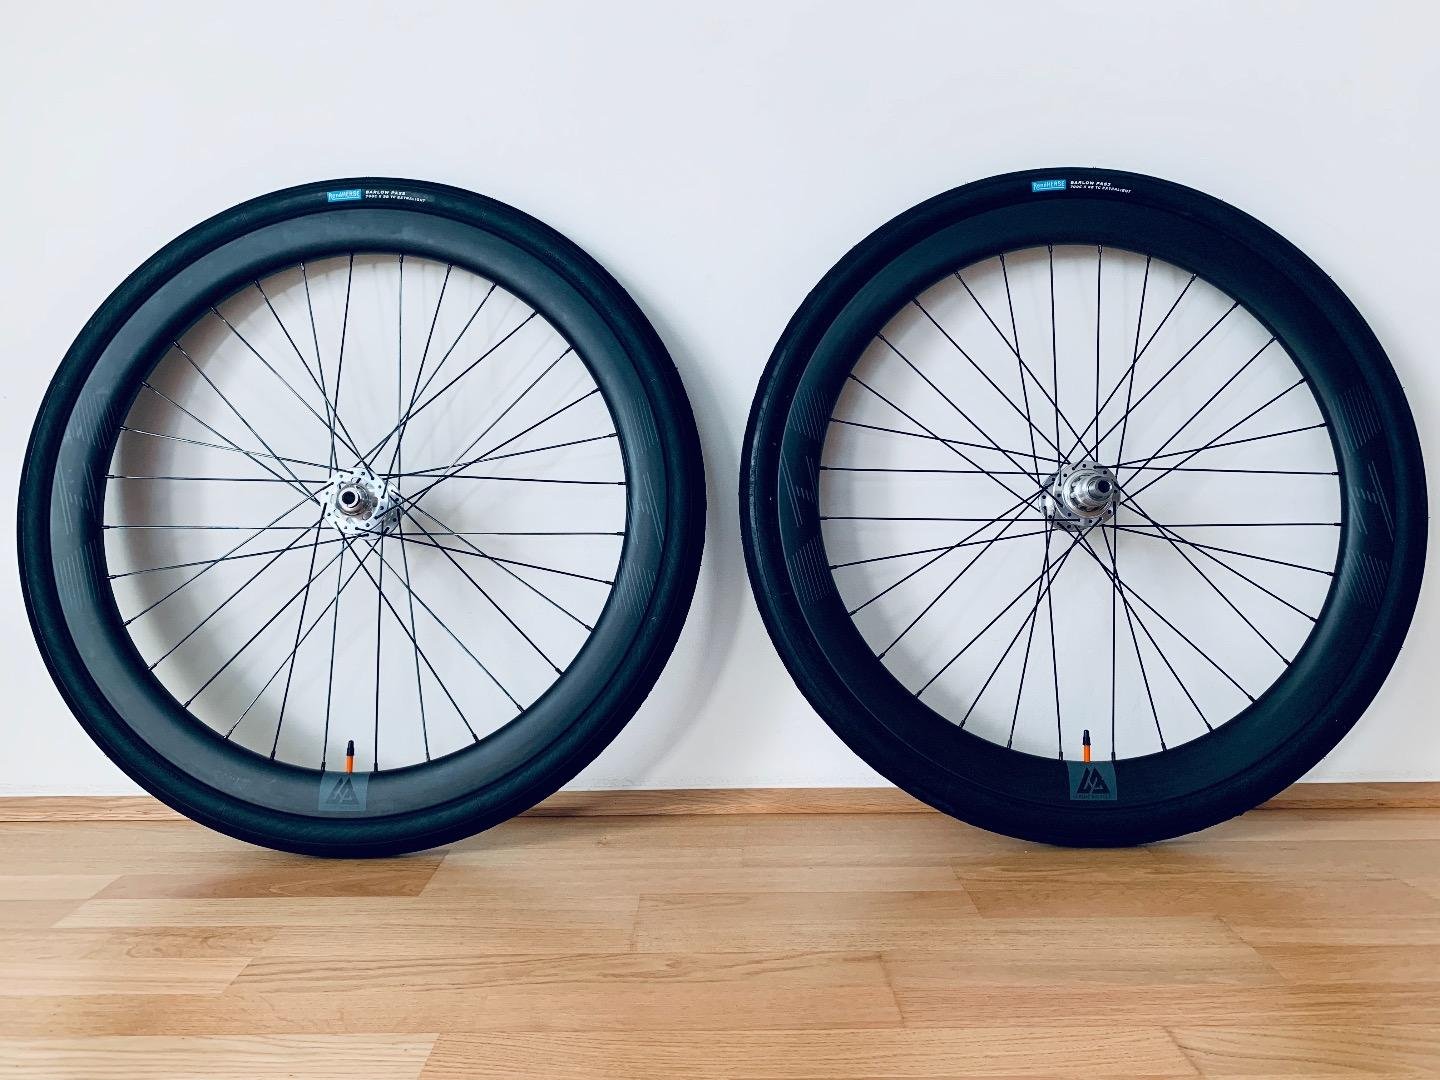 45mm-carbon-road-disc-wheelset-with-rene-herse-tires-38c